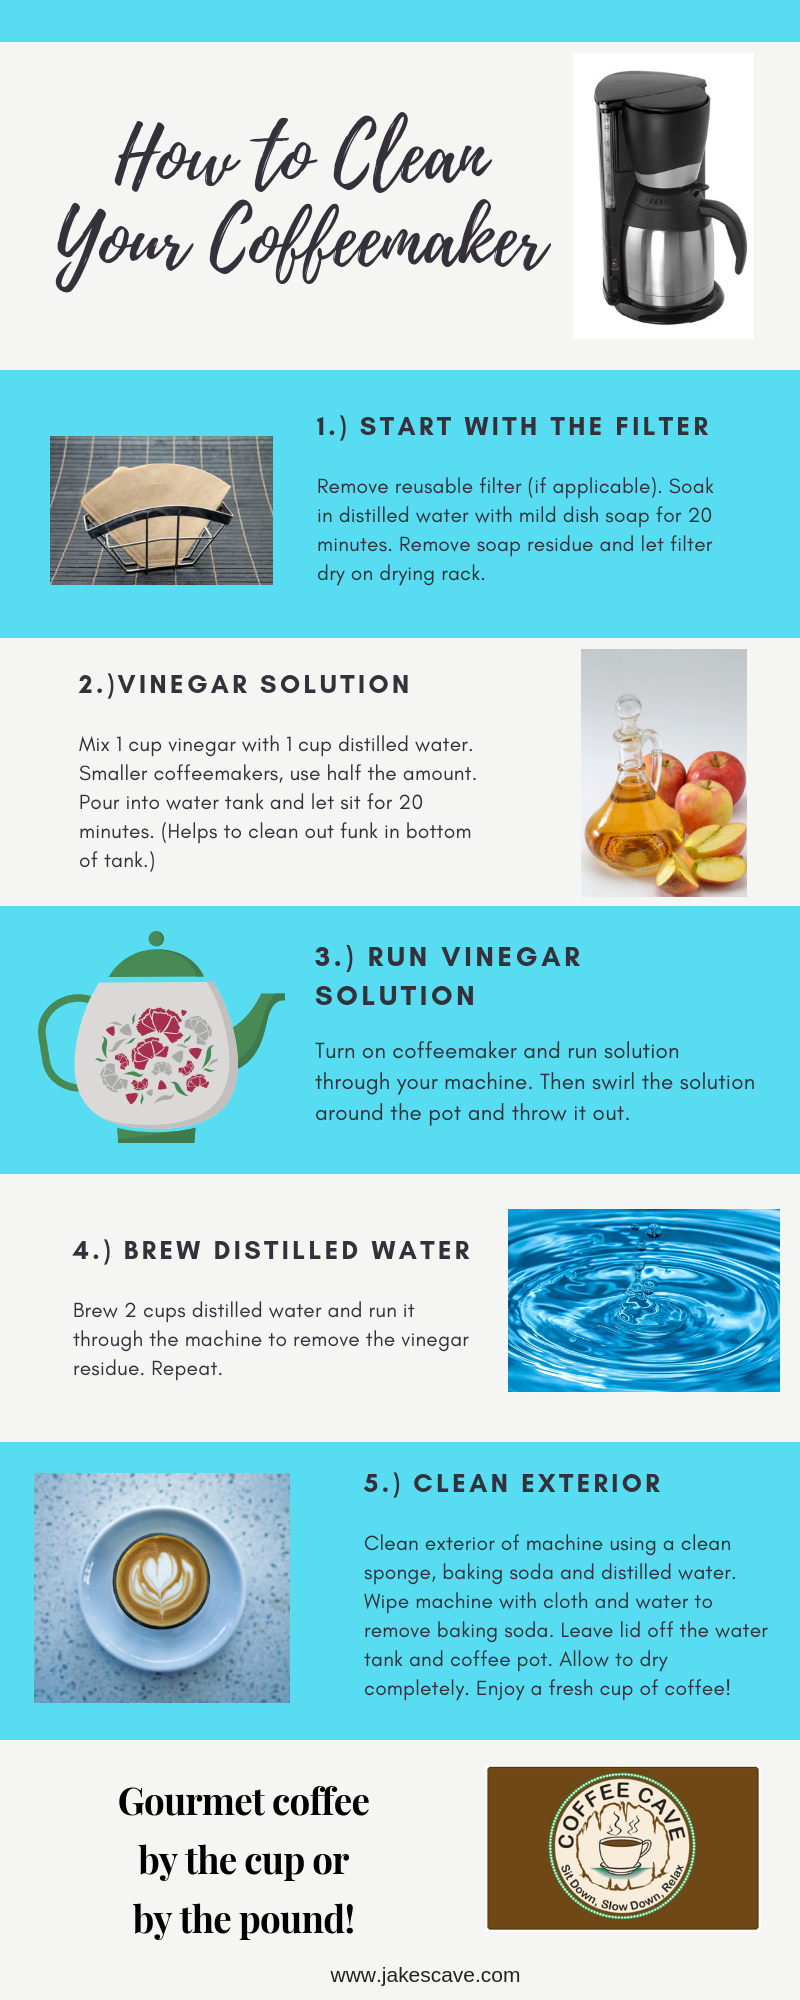 How to clean your coffeemaker infographic